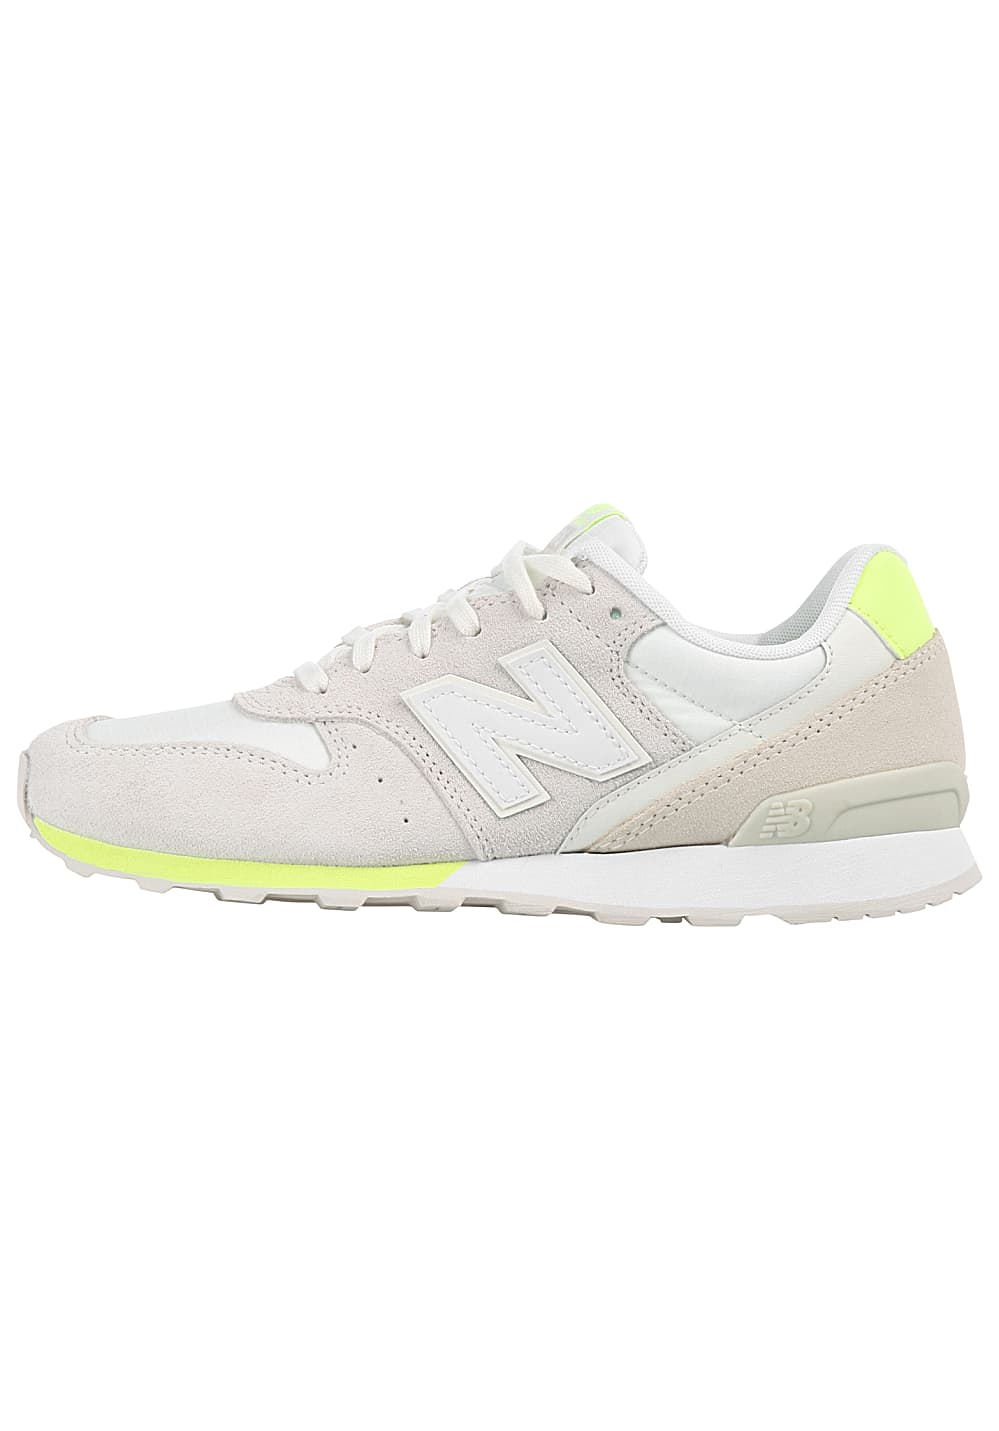 brand new 853cc 62fd9 NEW BALANCE WR996 D - Sneakers for Women - Beige